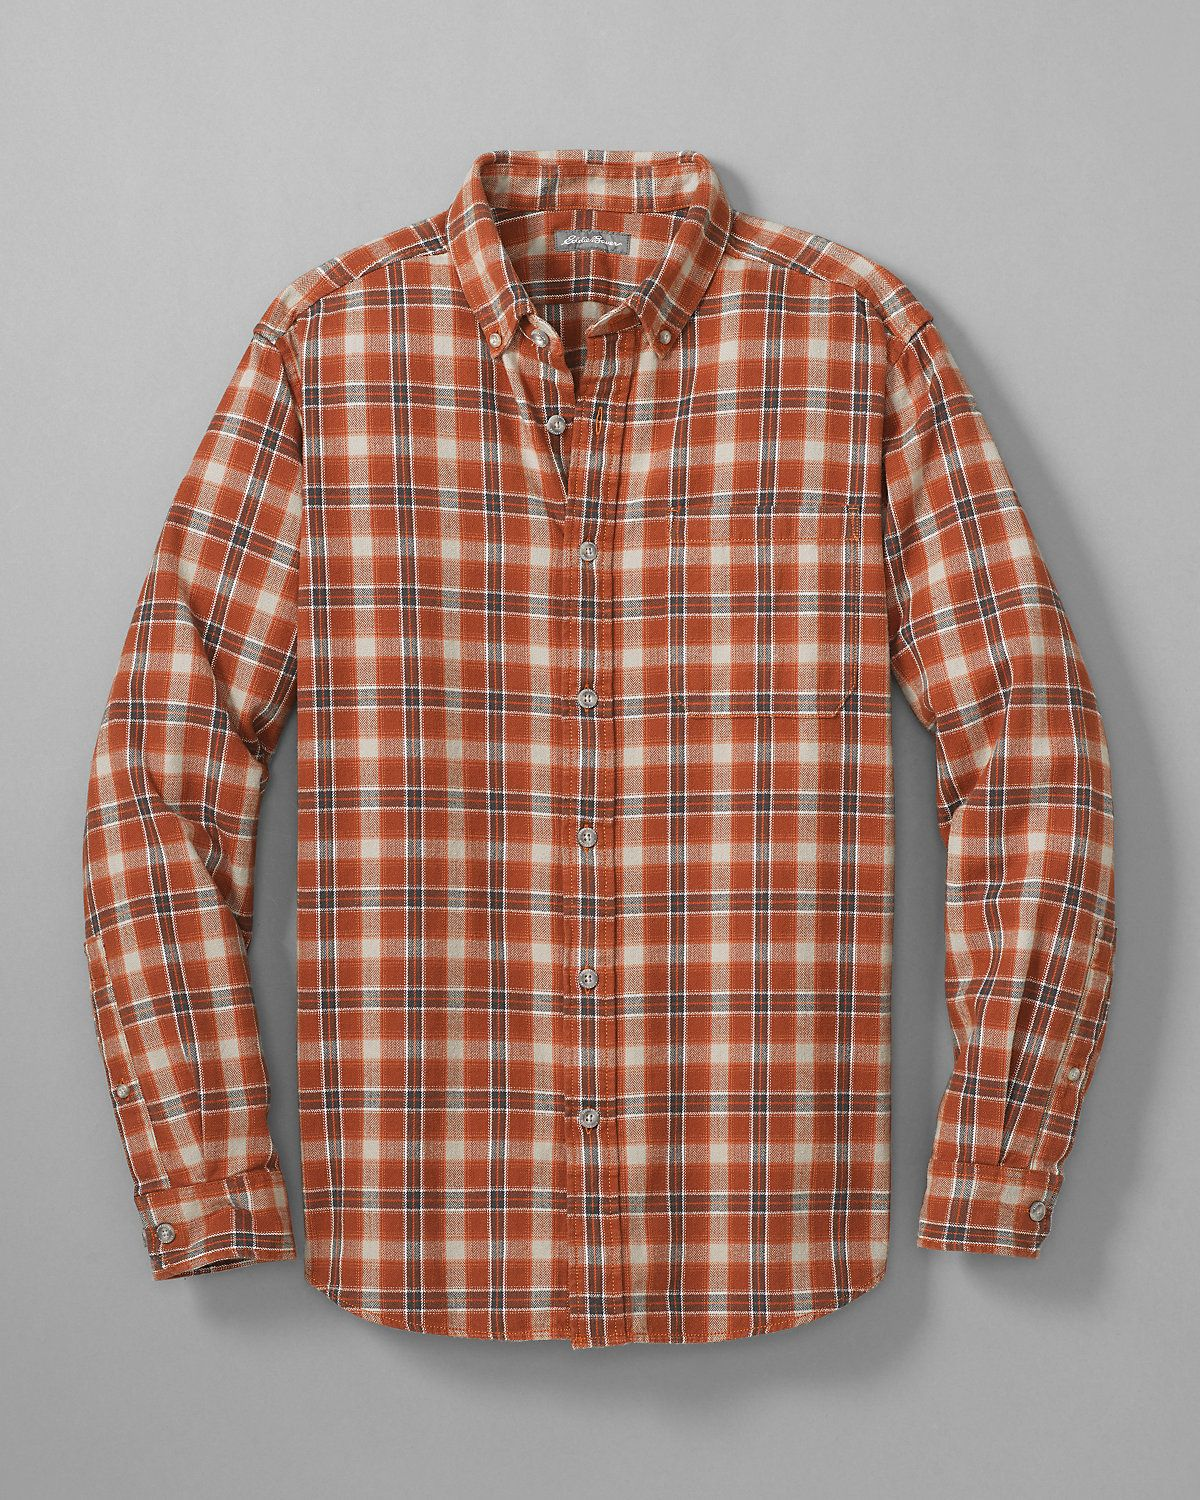 Flannel shirts at kohl's  Menus Eddieus Favorite Flannel Relaxed Fit Shirt  Plaid  Eddie